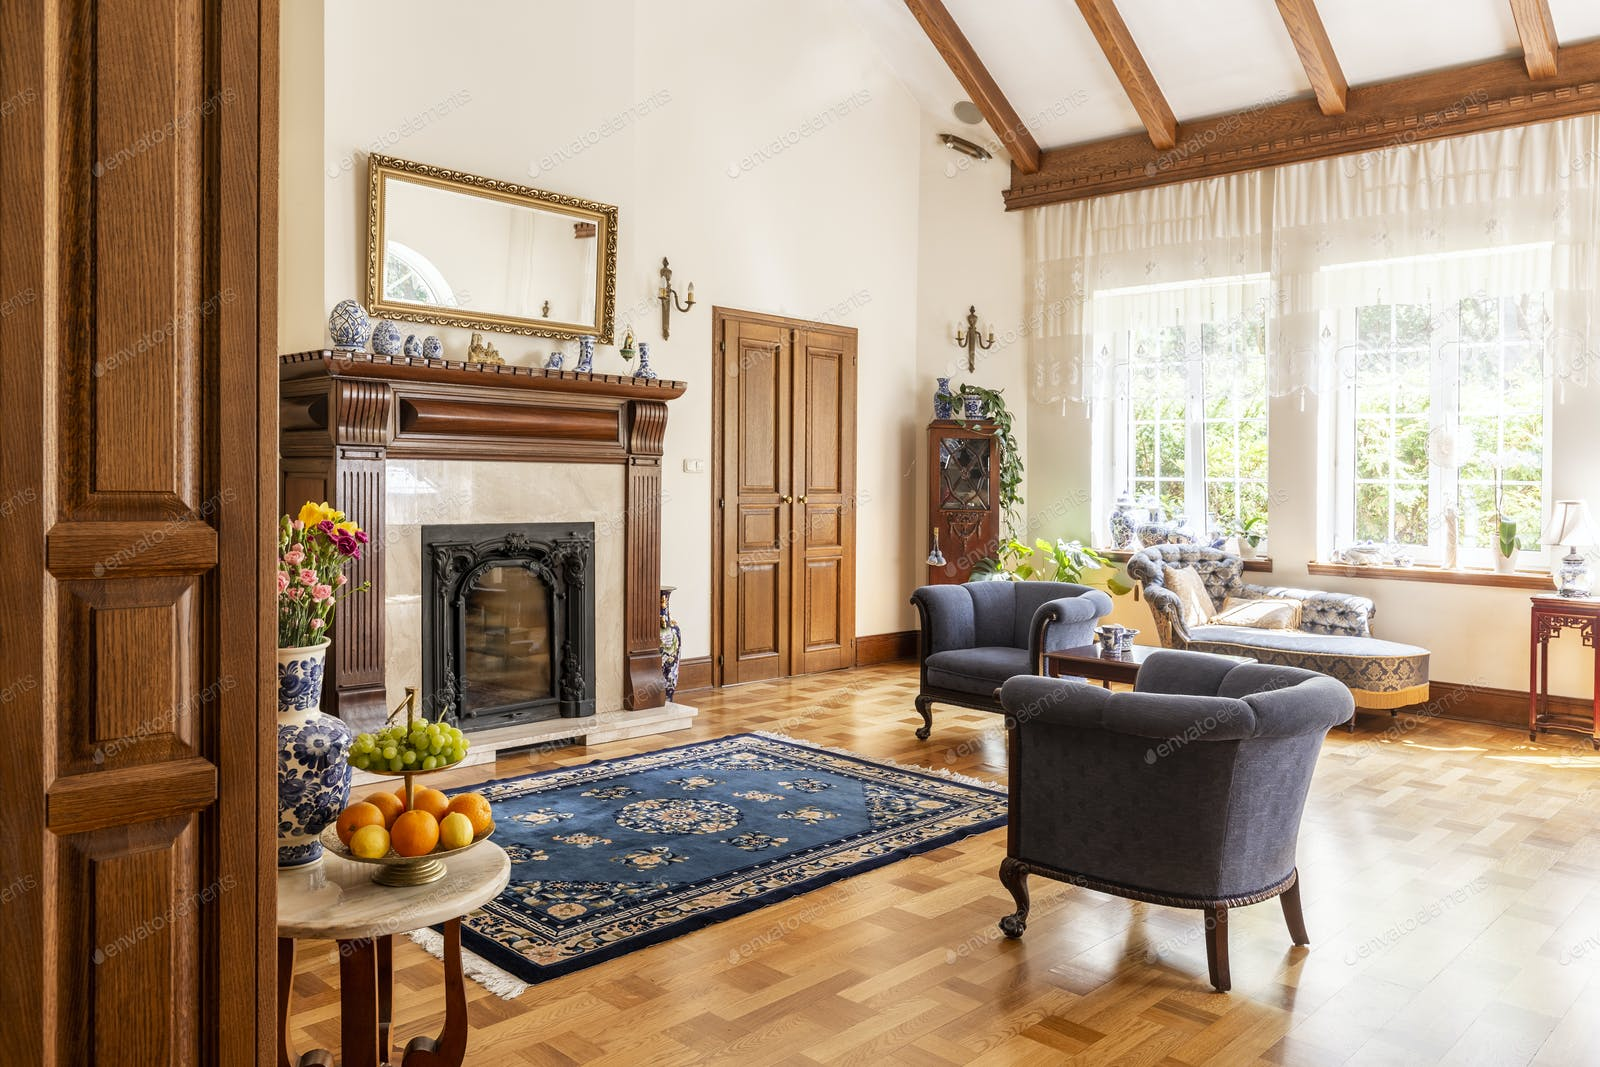 Blue Armchairs And Patterned Carpet In